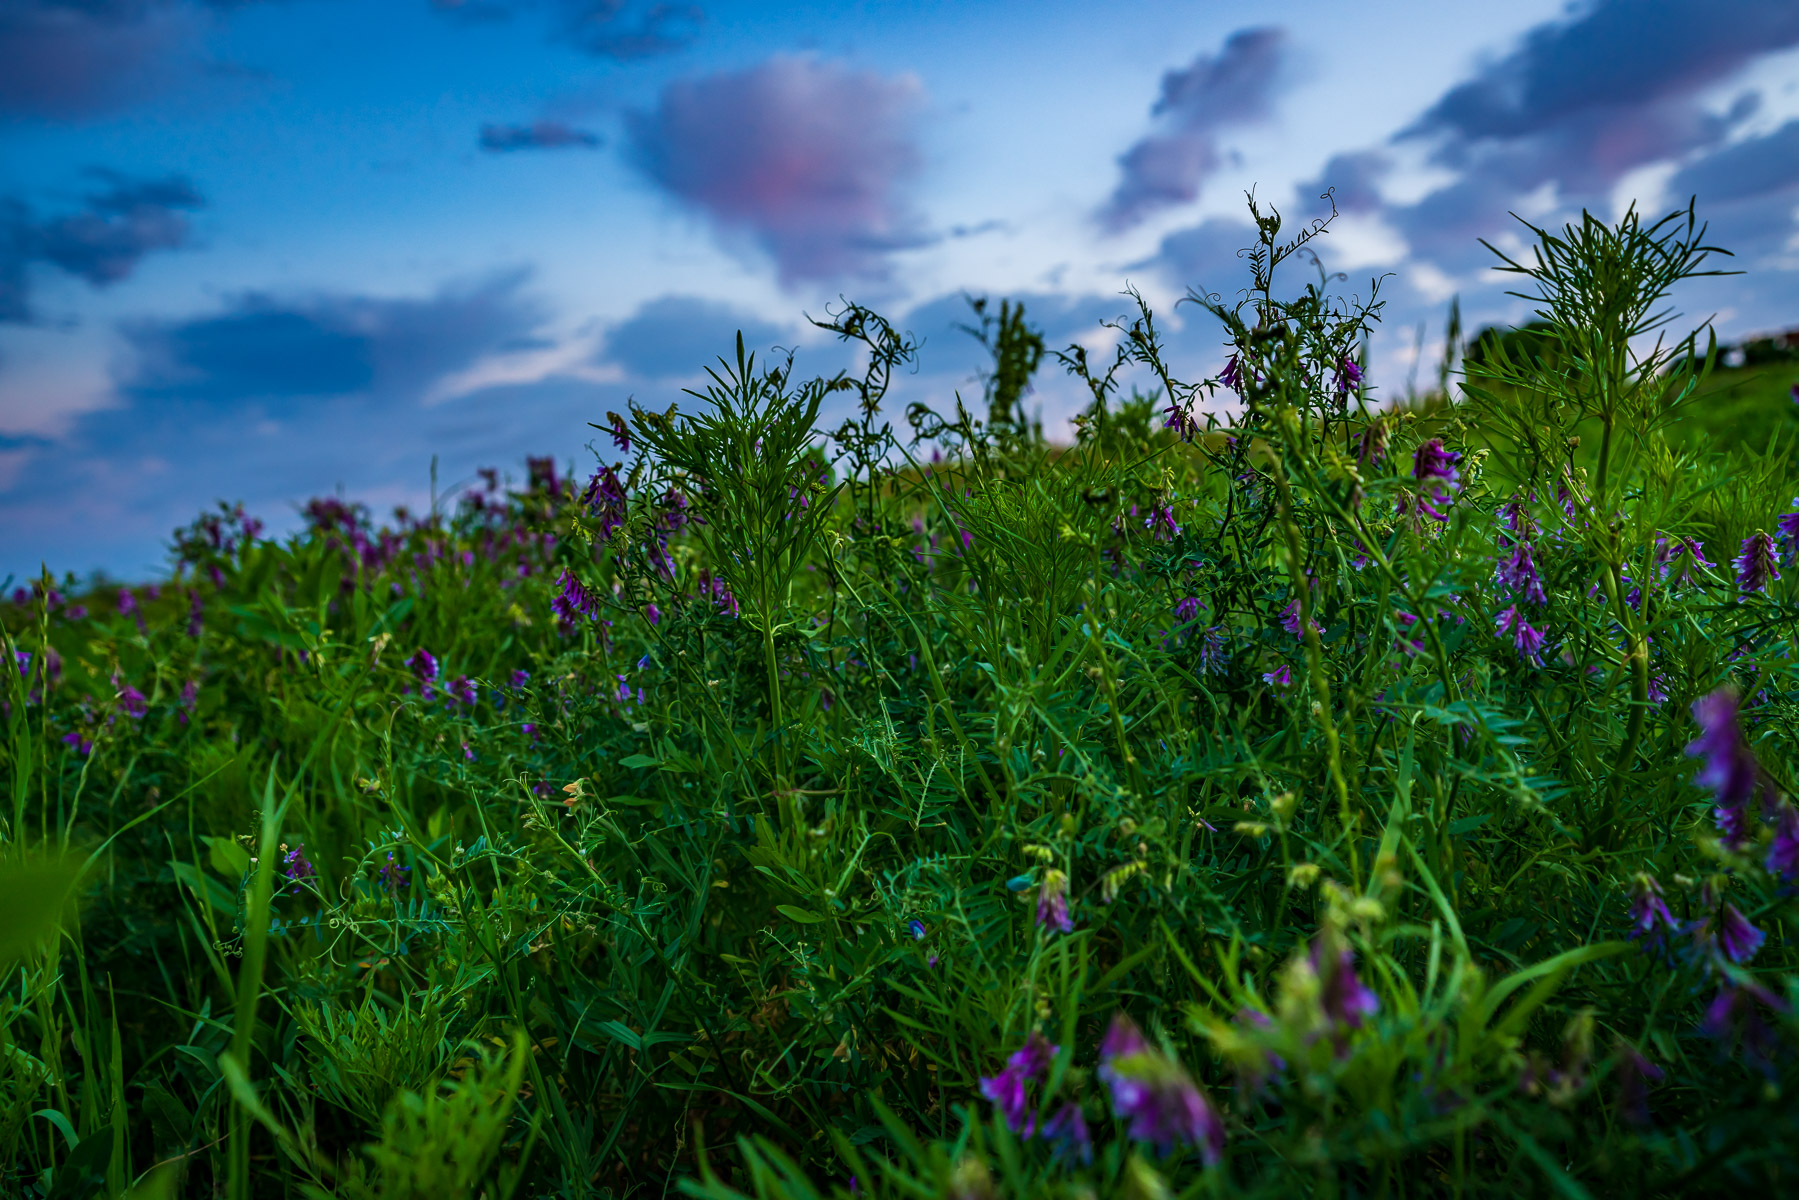 Flowers in a field at North Texas' Hagerman National Wildlife Refuge.